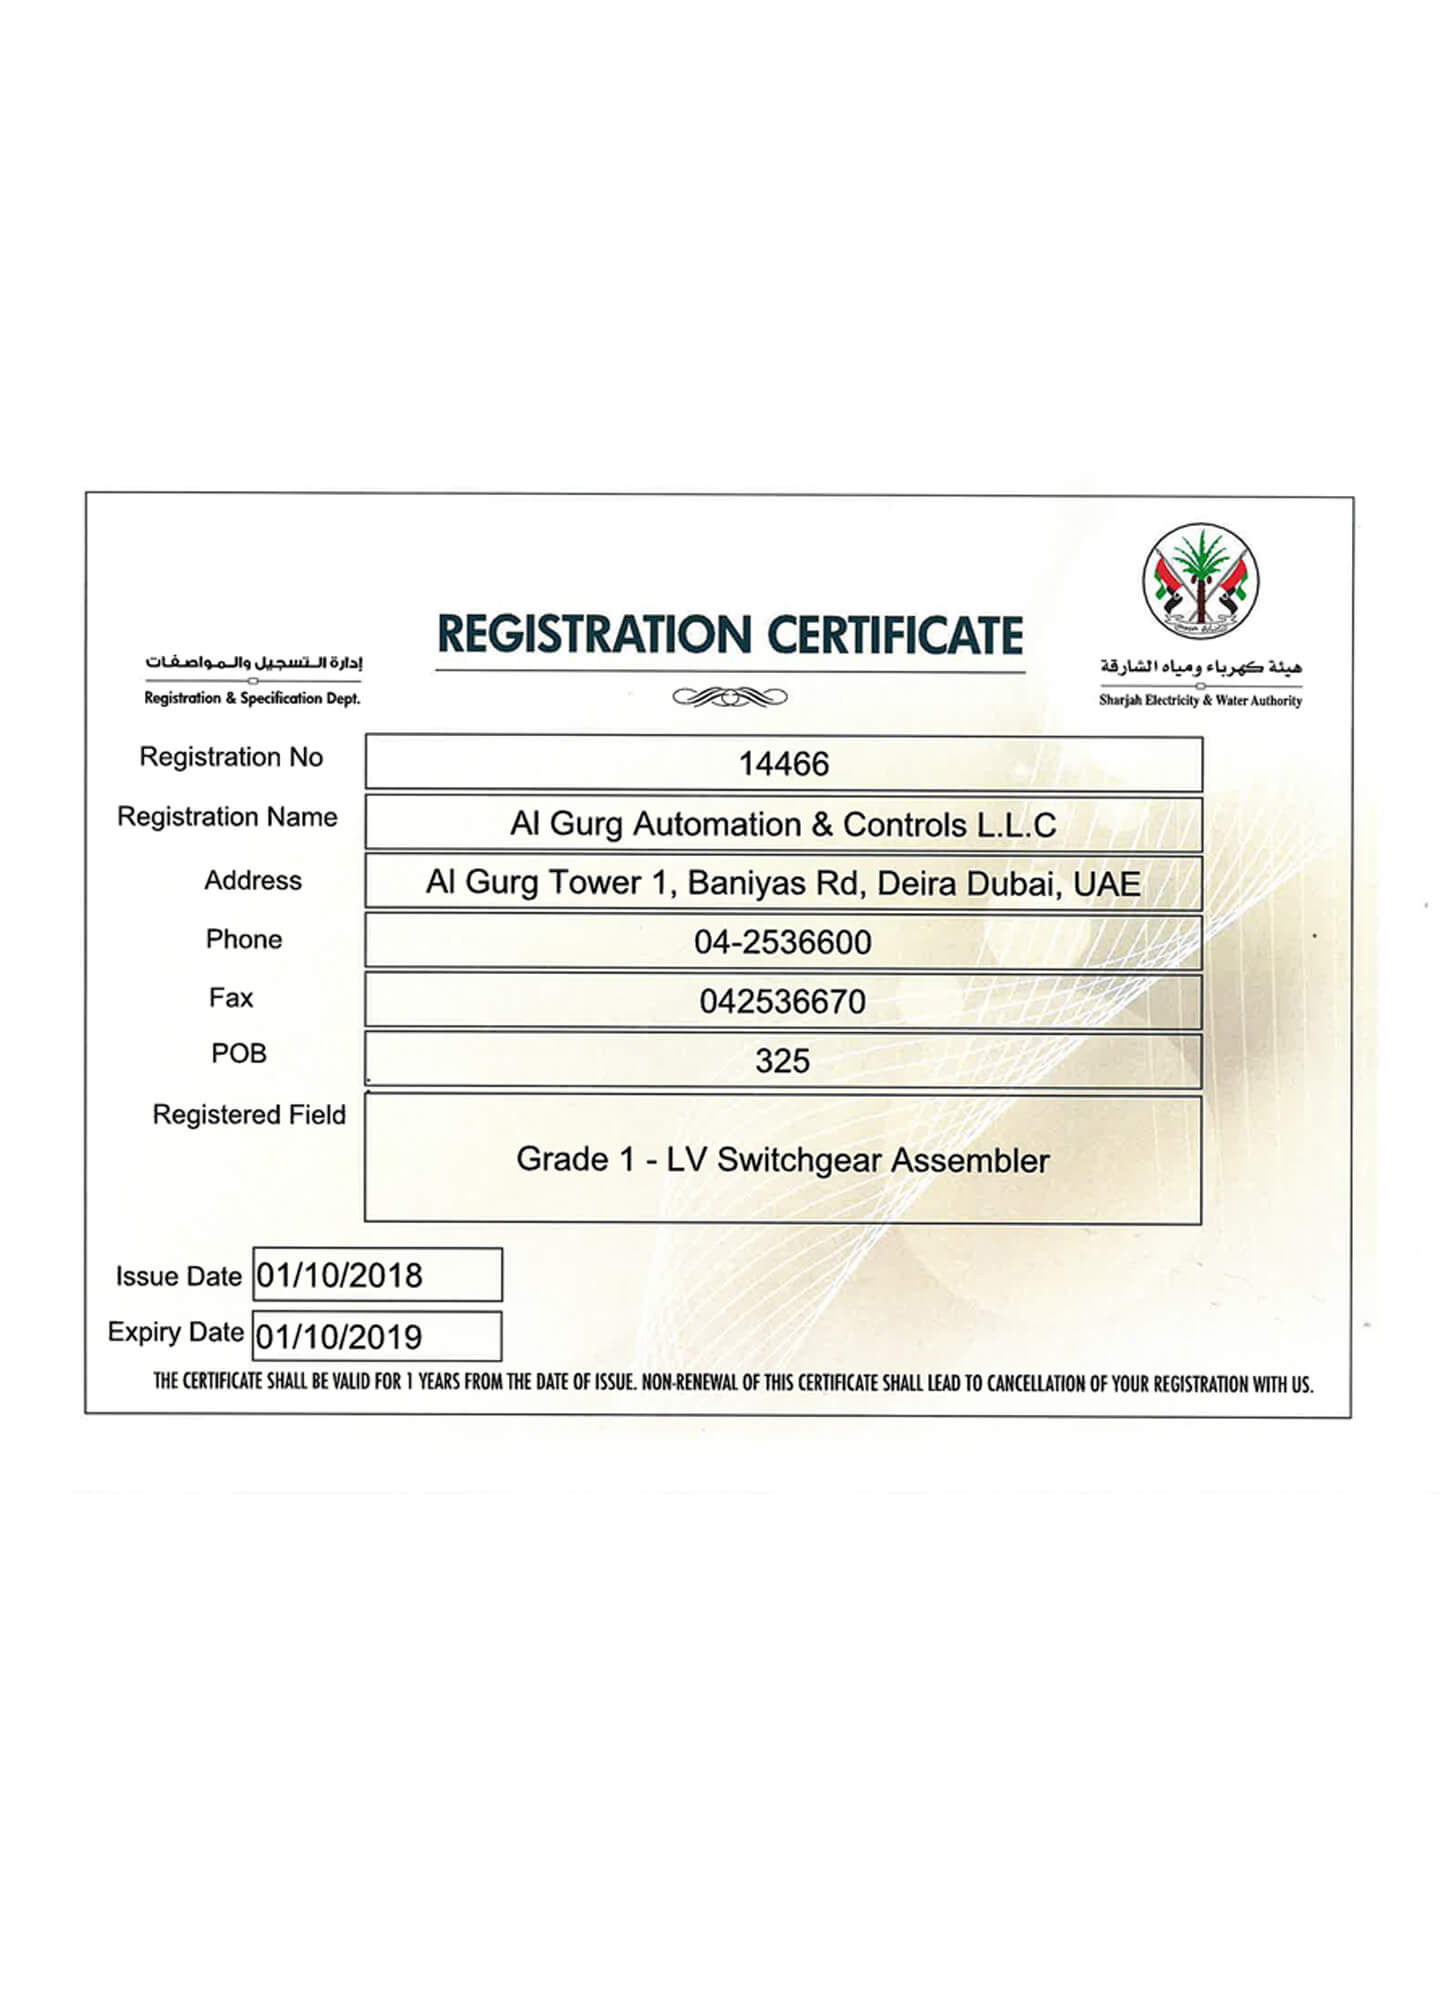 Registration certificate from SEWA thumbnail.jpg